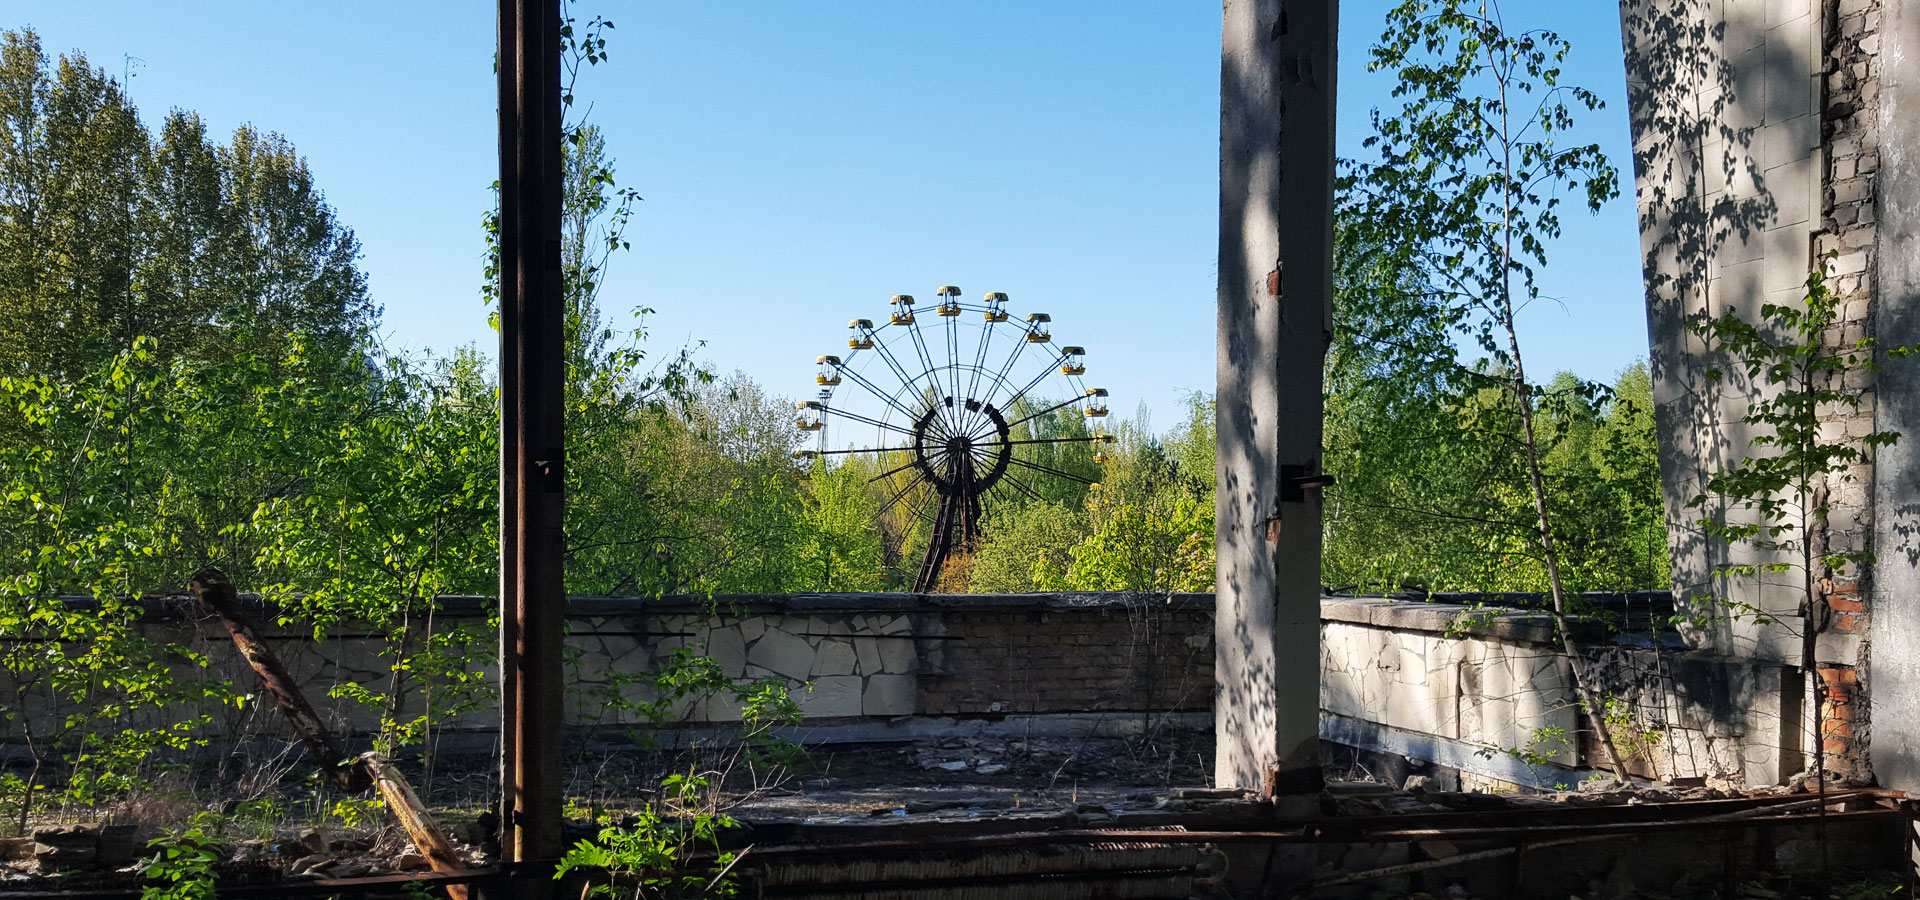 Ferris Wheel in Chernobyl